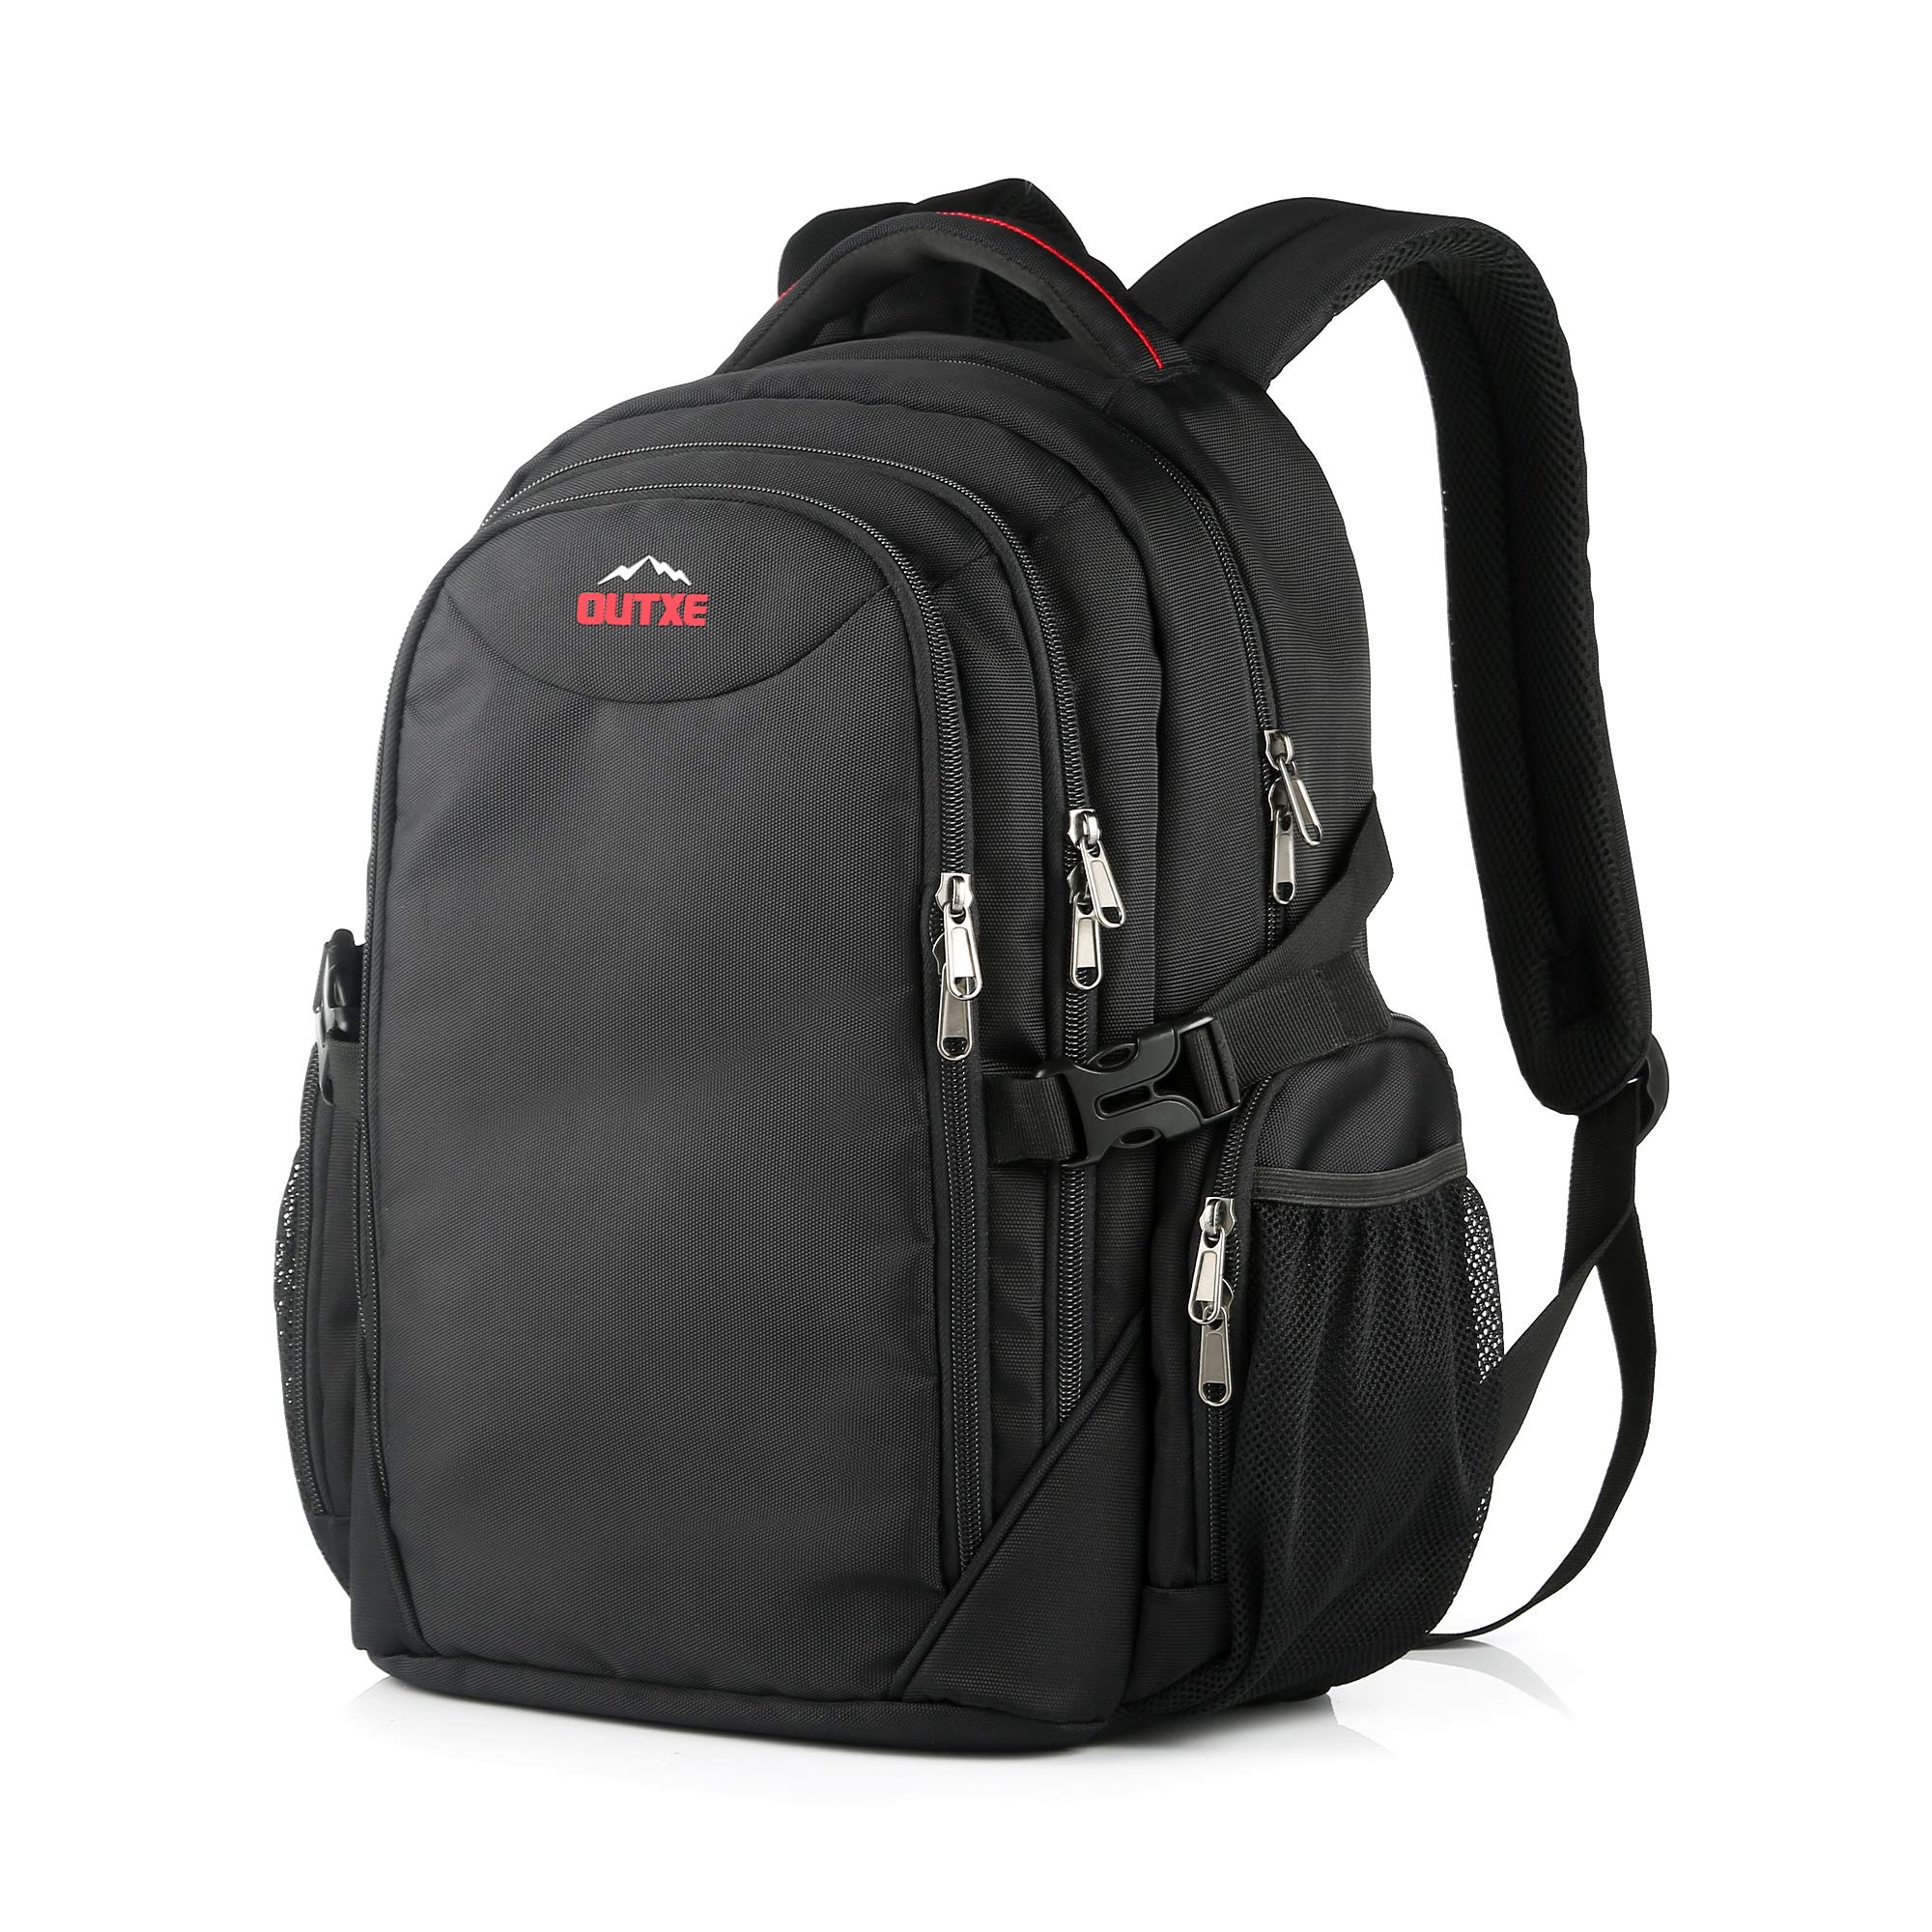 OUTXE Cooler Backpack Insulated laptops